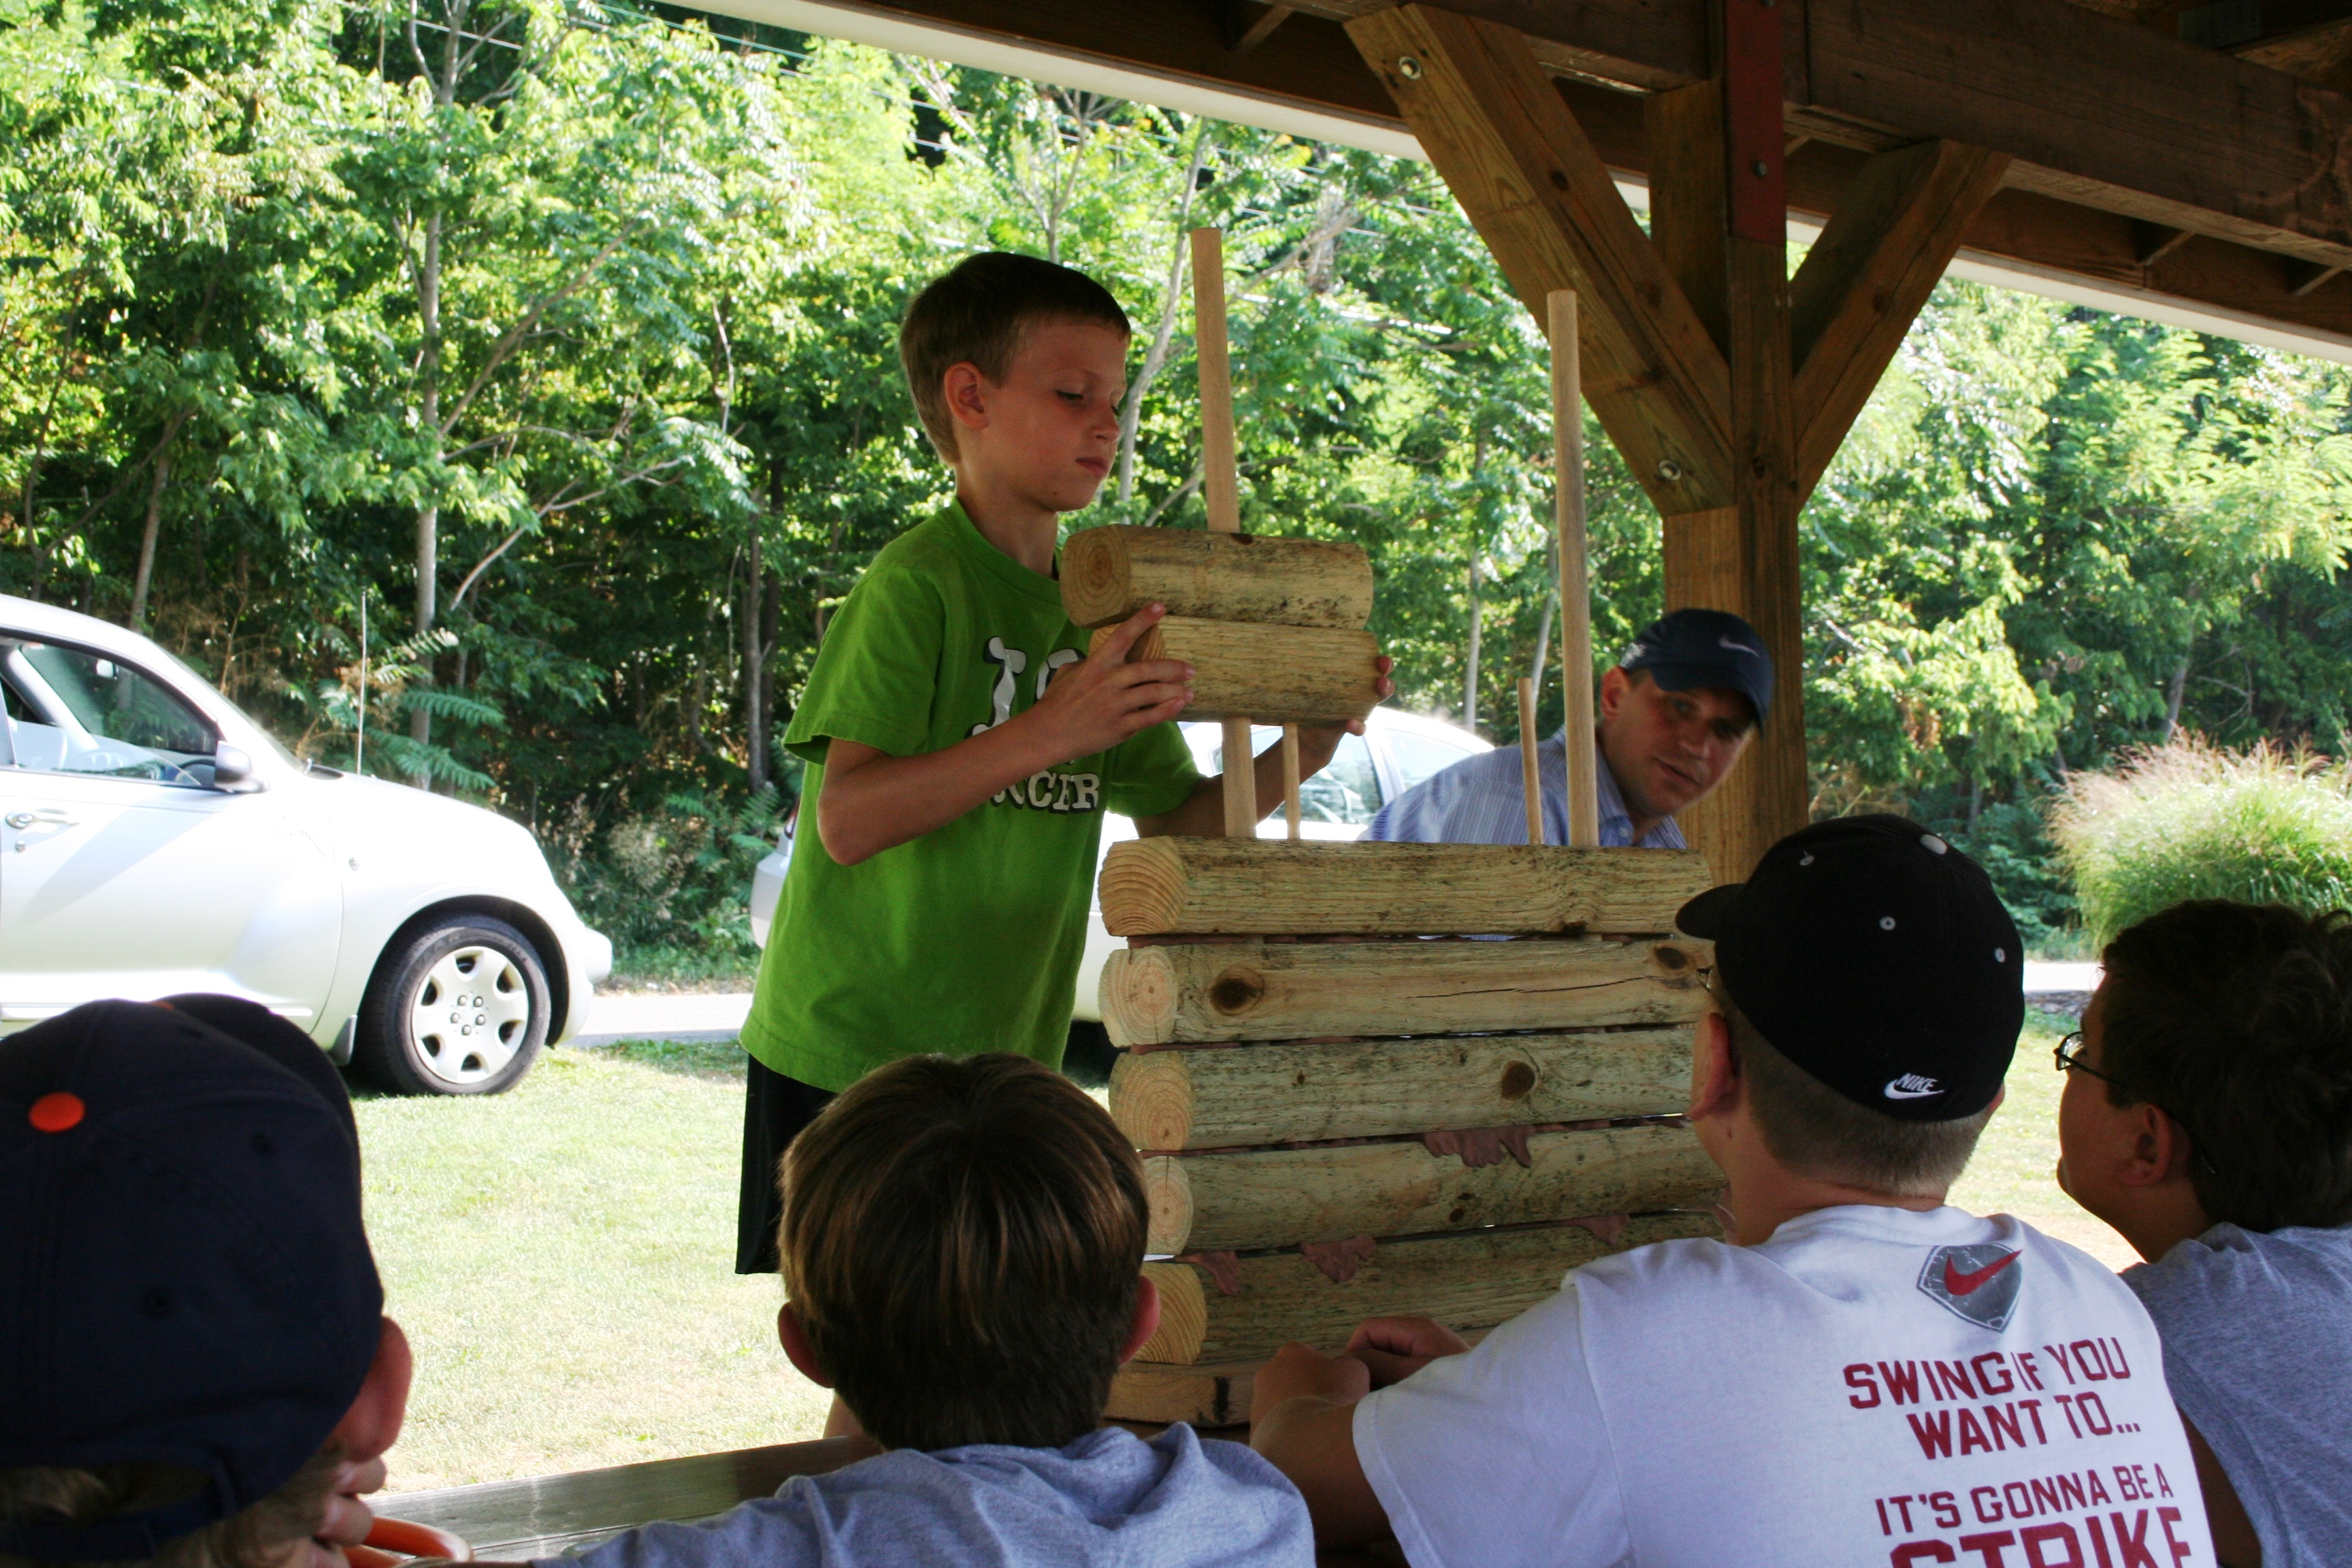 Children taking part in ArchiCamp, sponsored by Historic Landmarks Foundation of Indiana and the Dr. James Ford Historic Home, learn how a log wall was constructed.